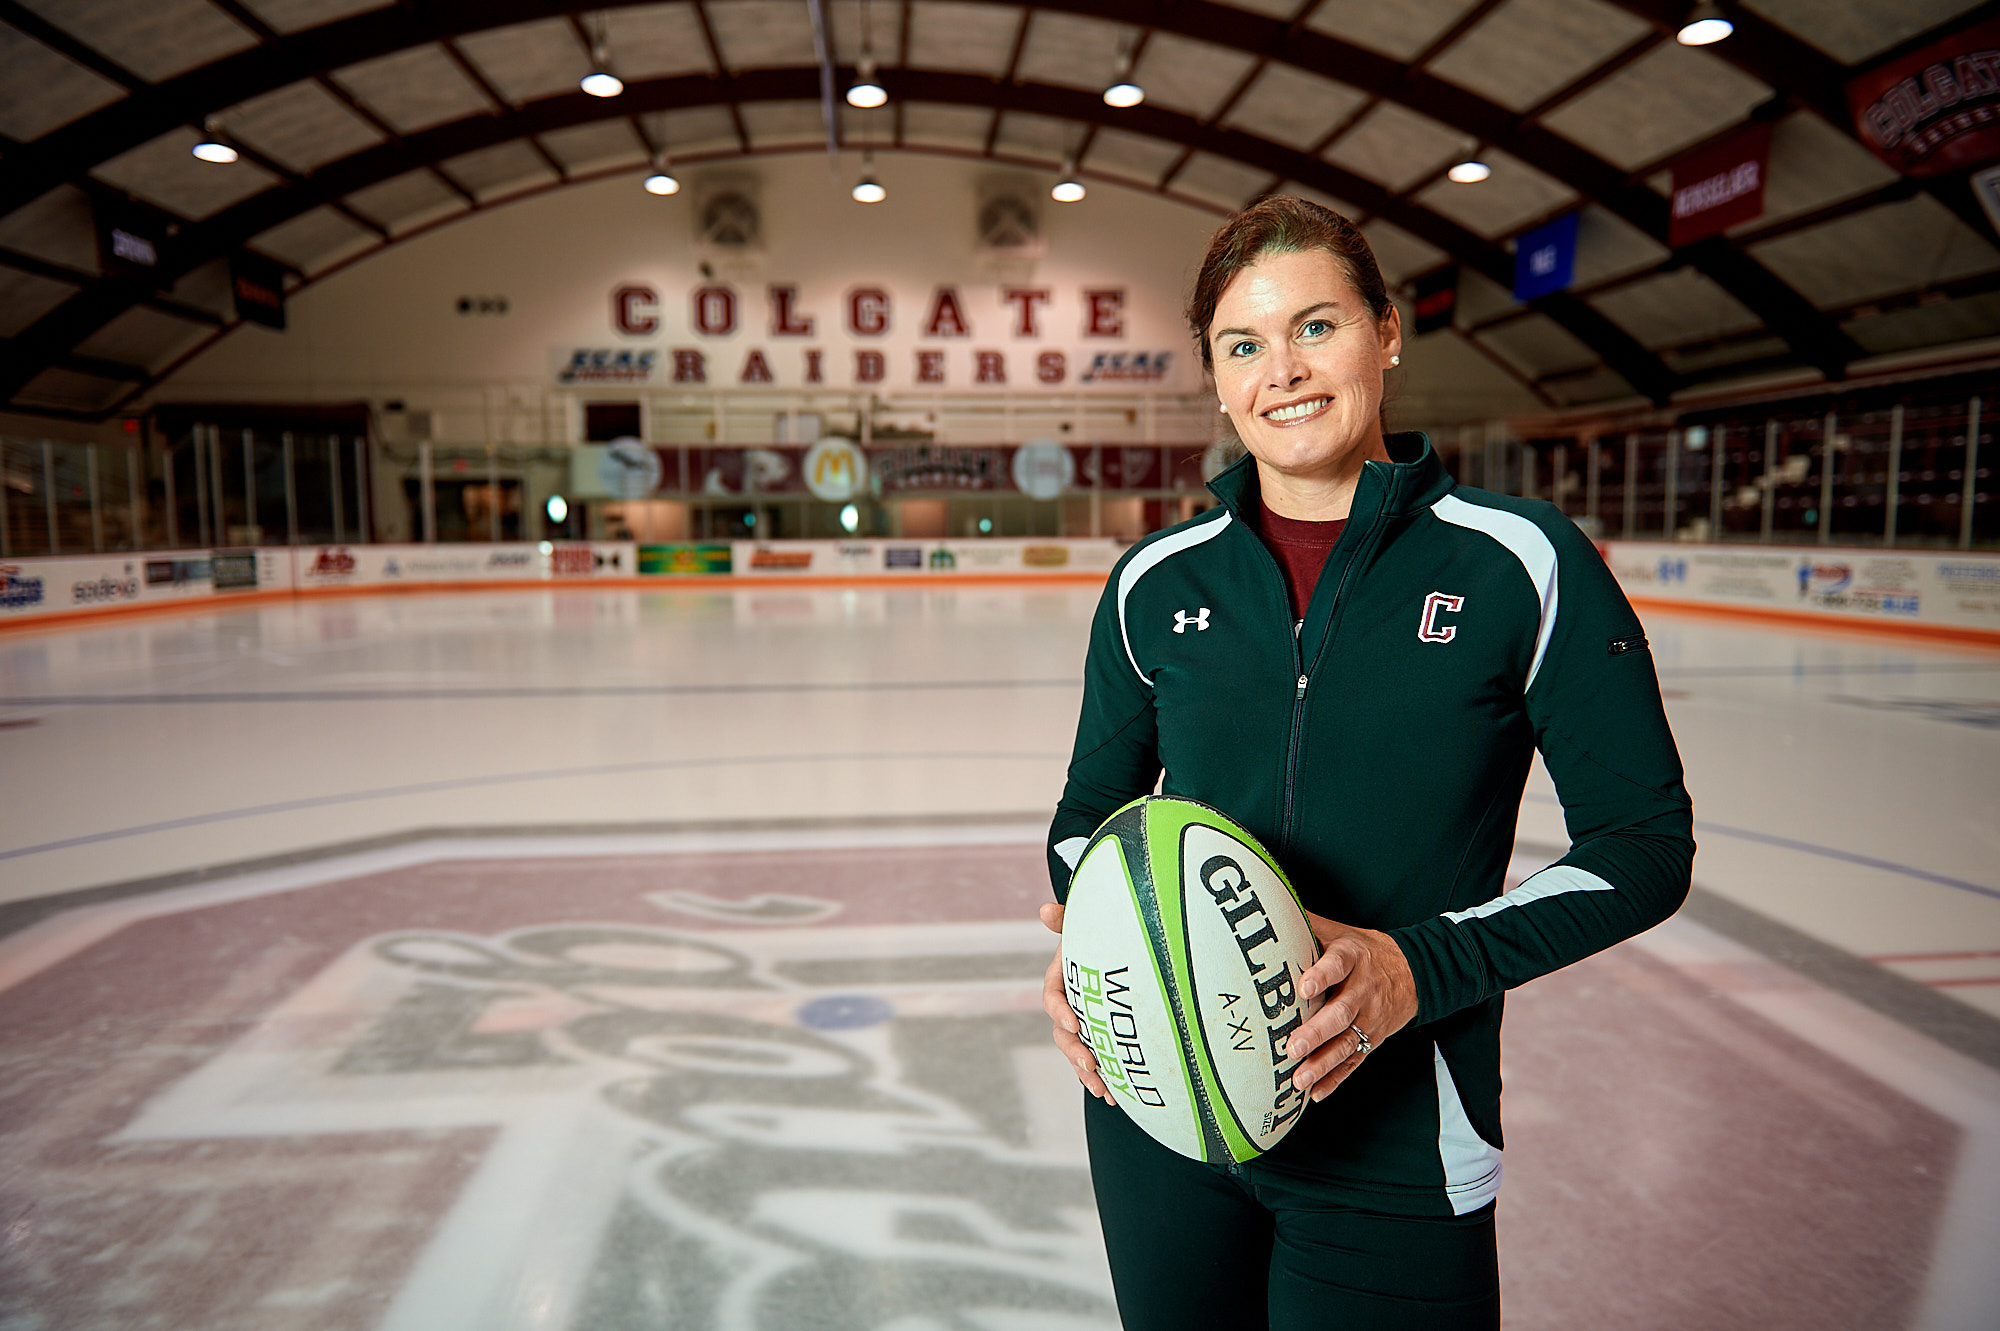 Ann-Marie Lemal, Coach of Figure Skating and the Rugby Club, photographed on the Ice at the Starr Hockey Rink on the Colgate University Campus